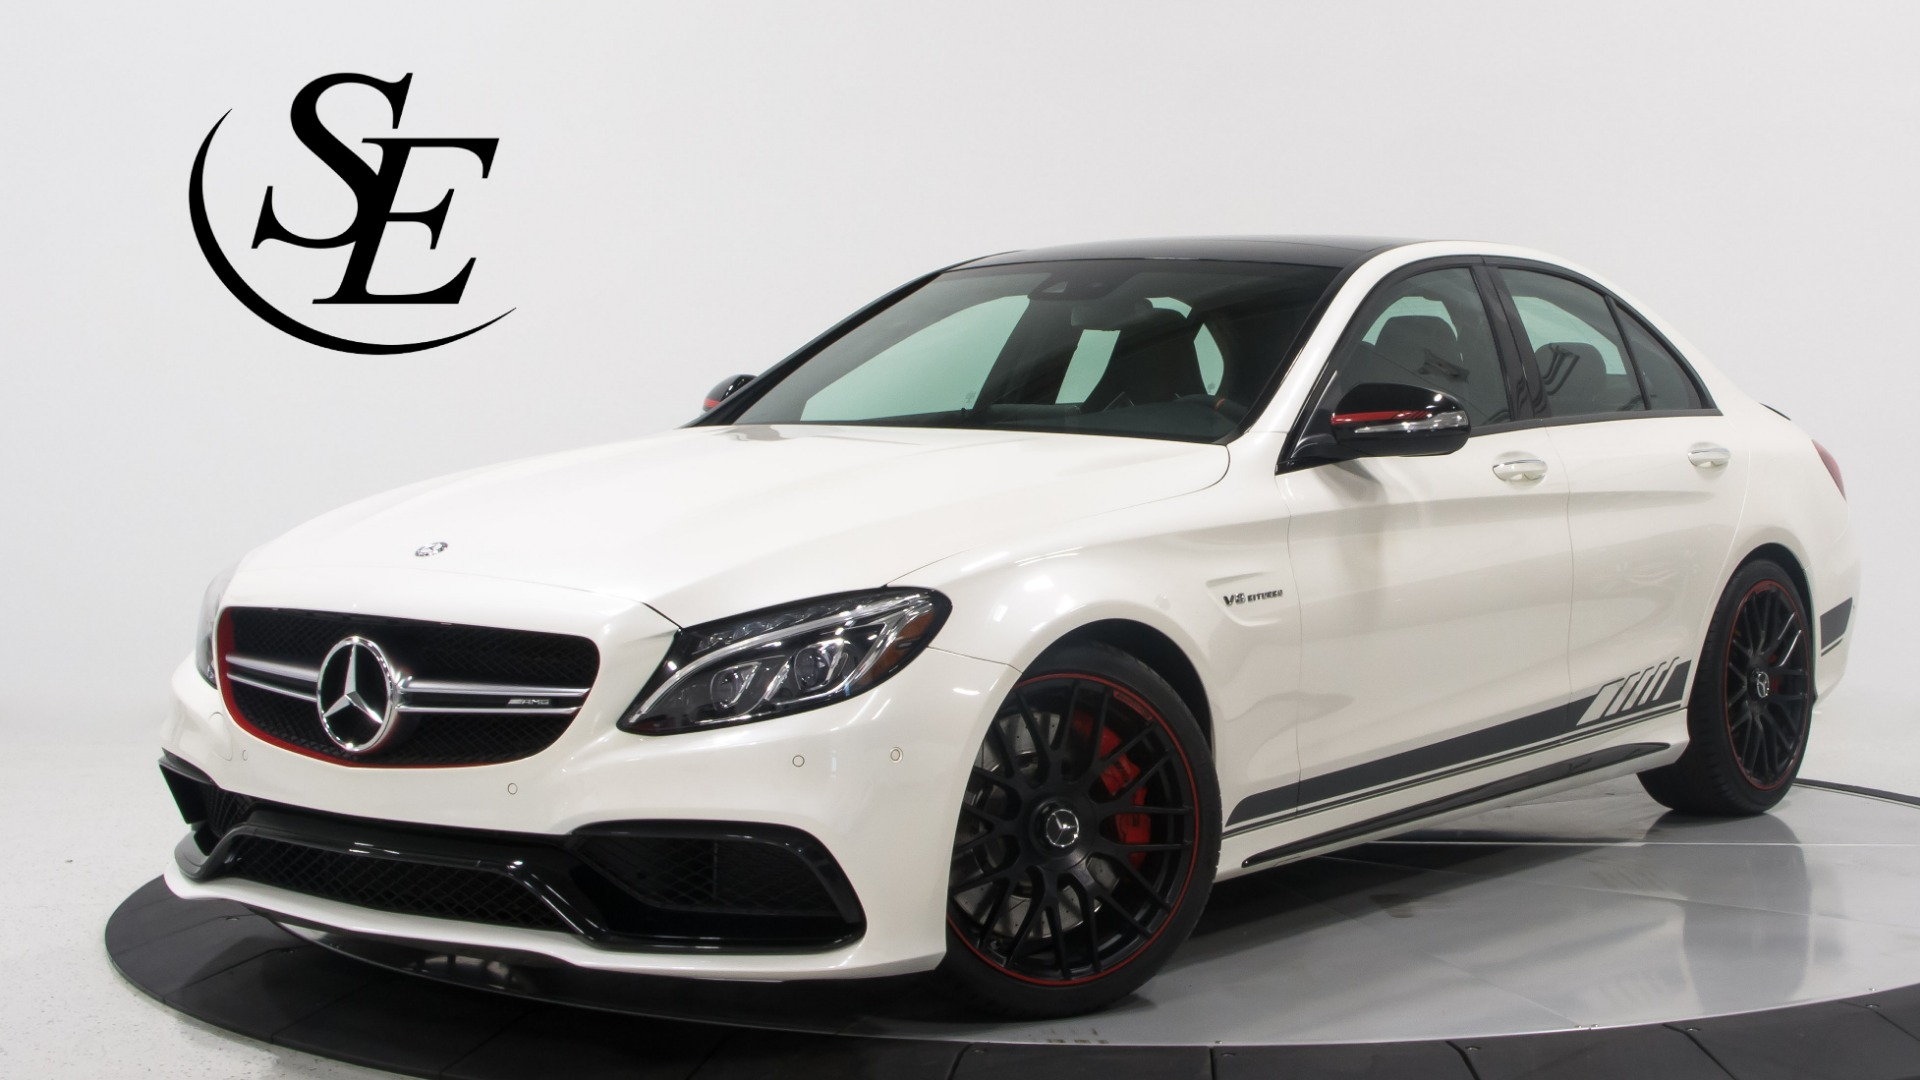 2015 Mercedes Benz C Class C 63 S AMG Stock for sale near